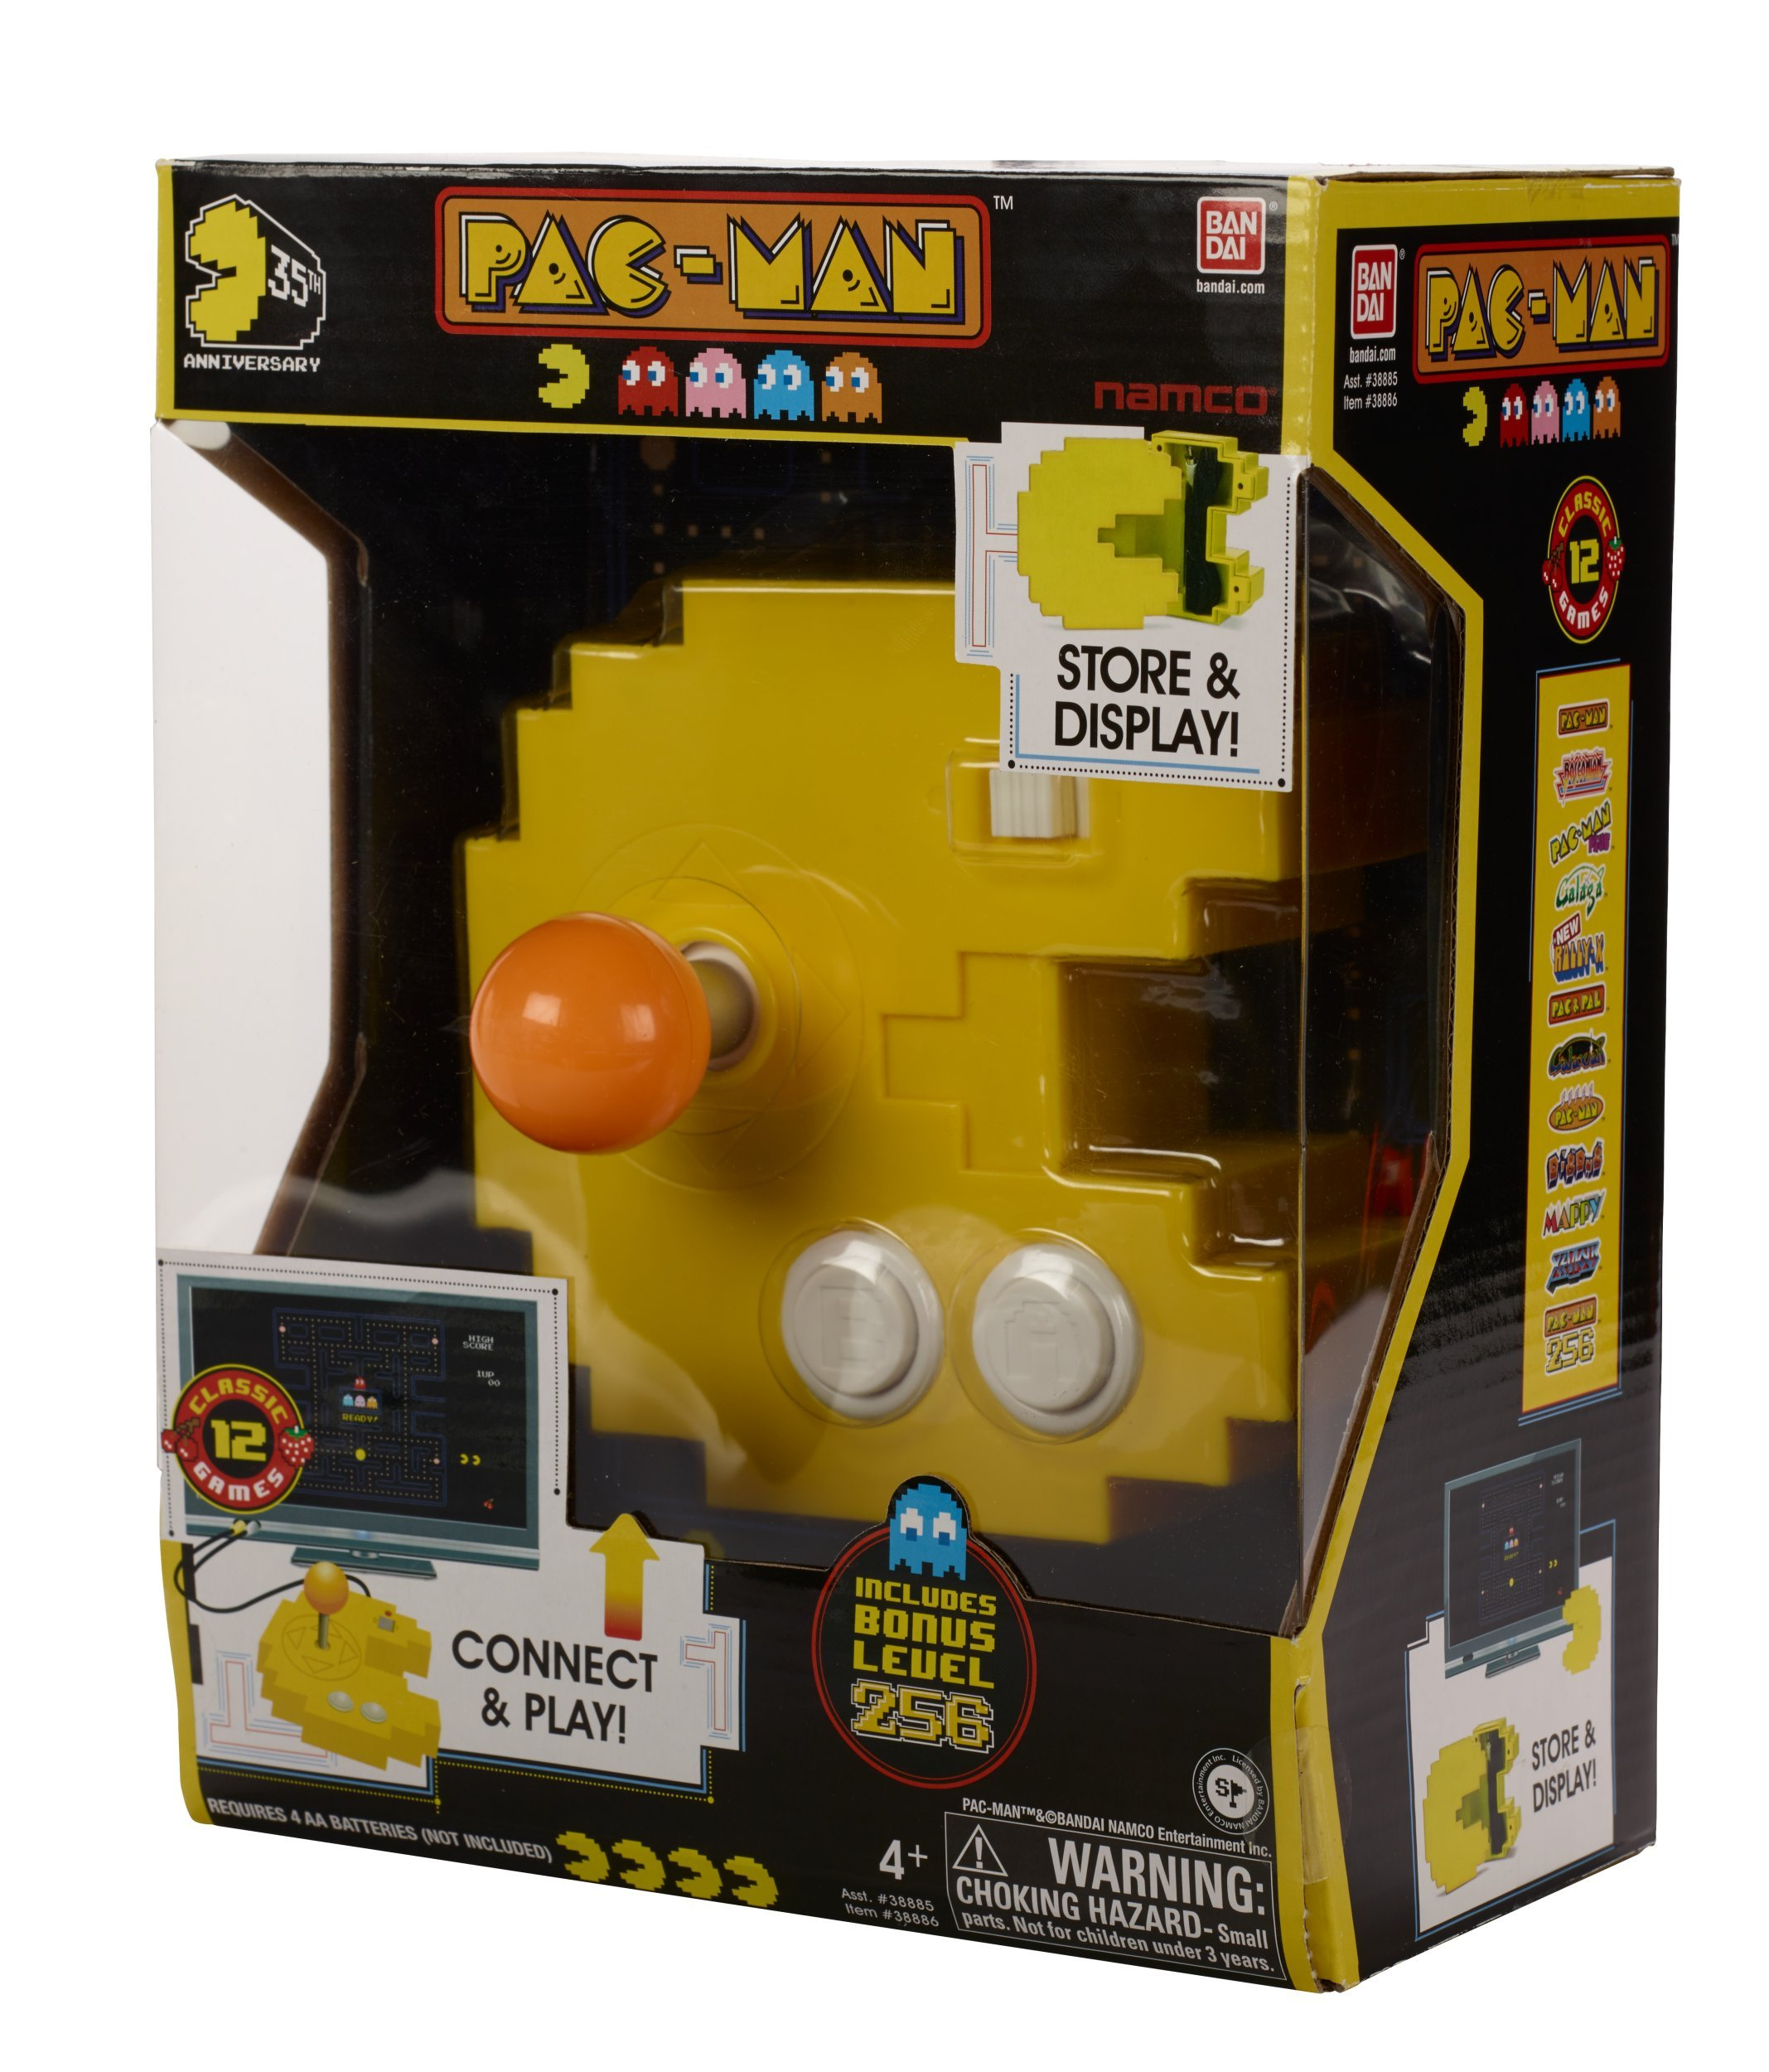 Buy Pacman Now!